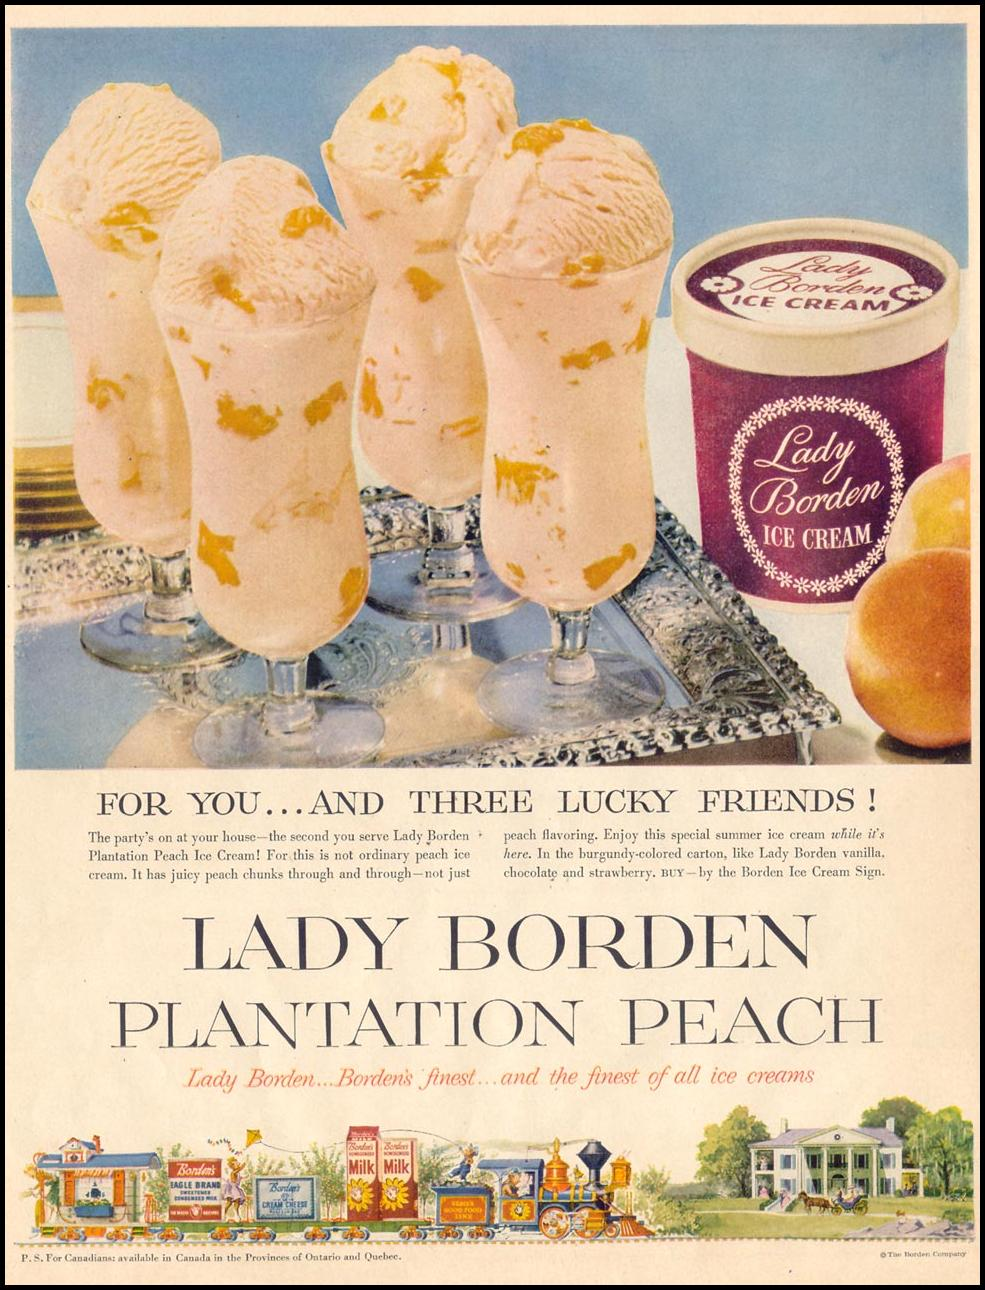 LADY BORDEN PLANTATION PEACH ICE CREAM LIFE 07/06/1953 p. 6